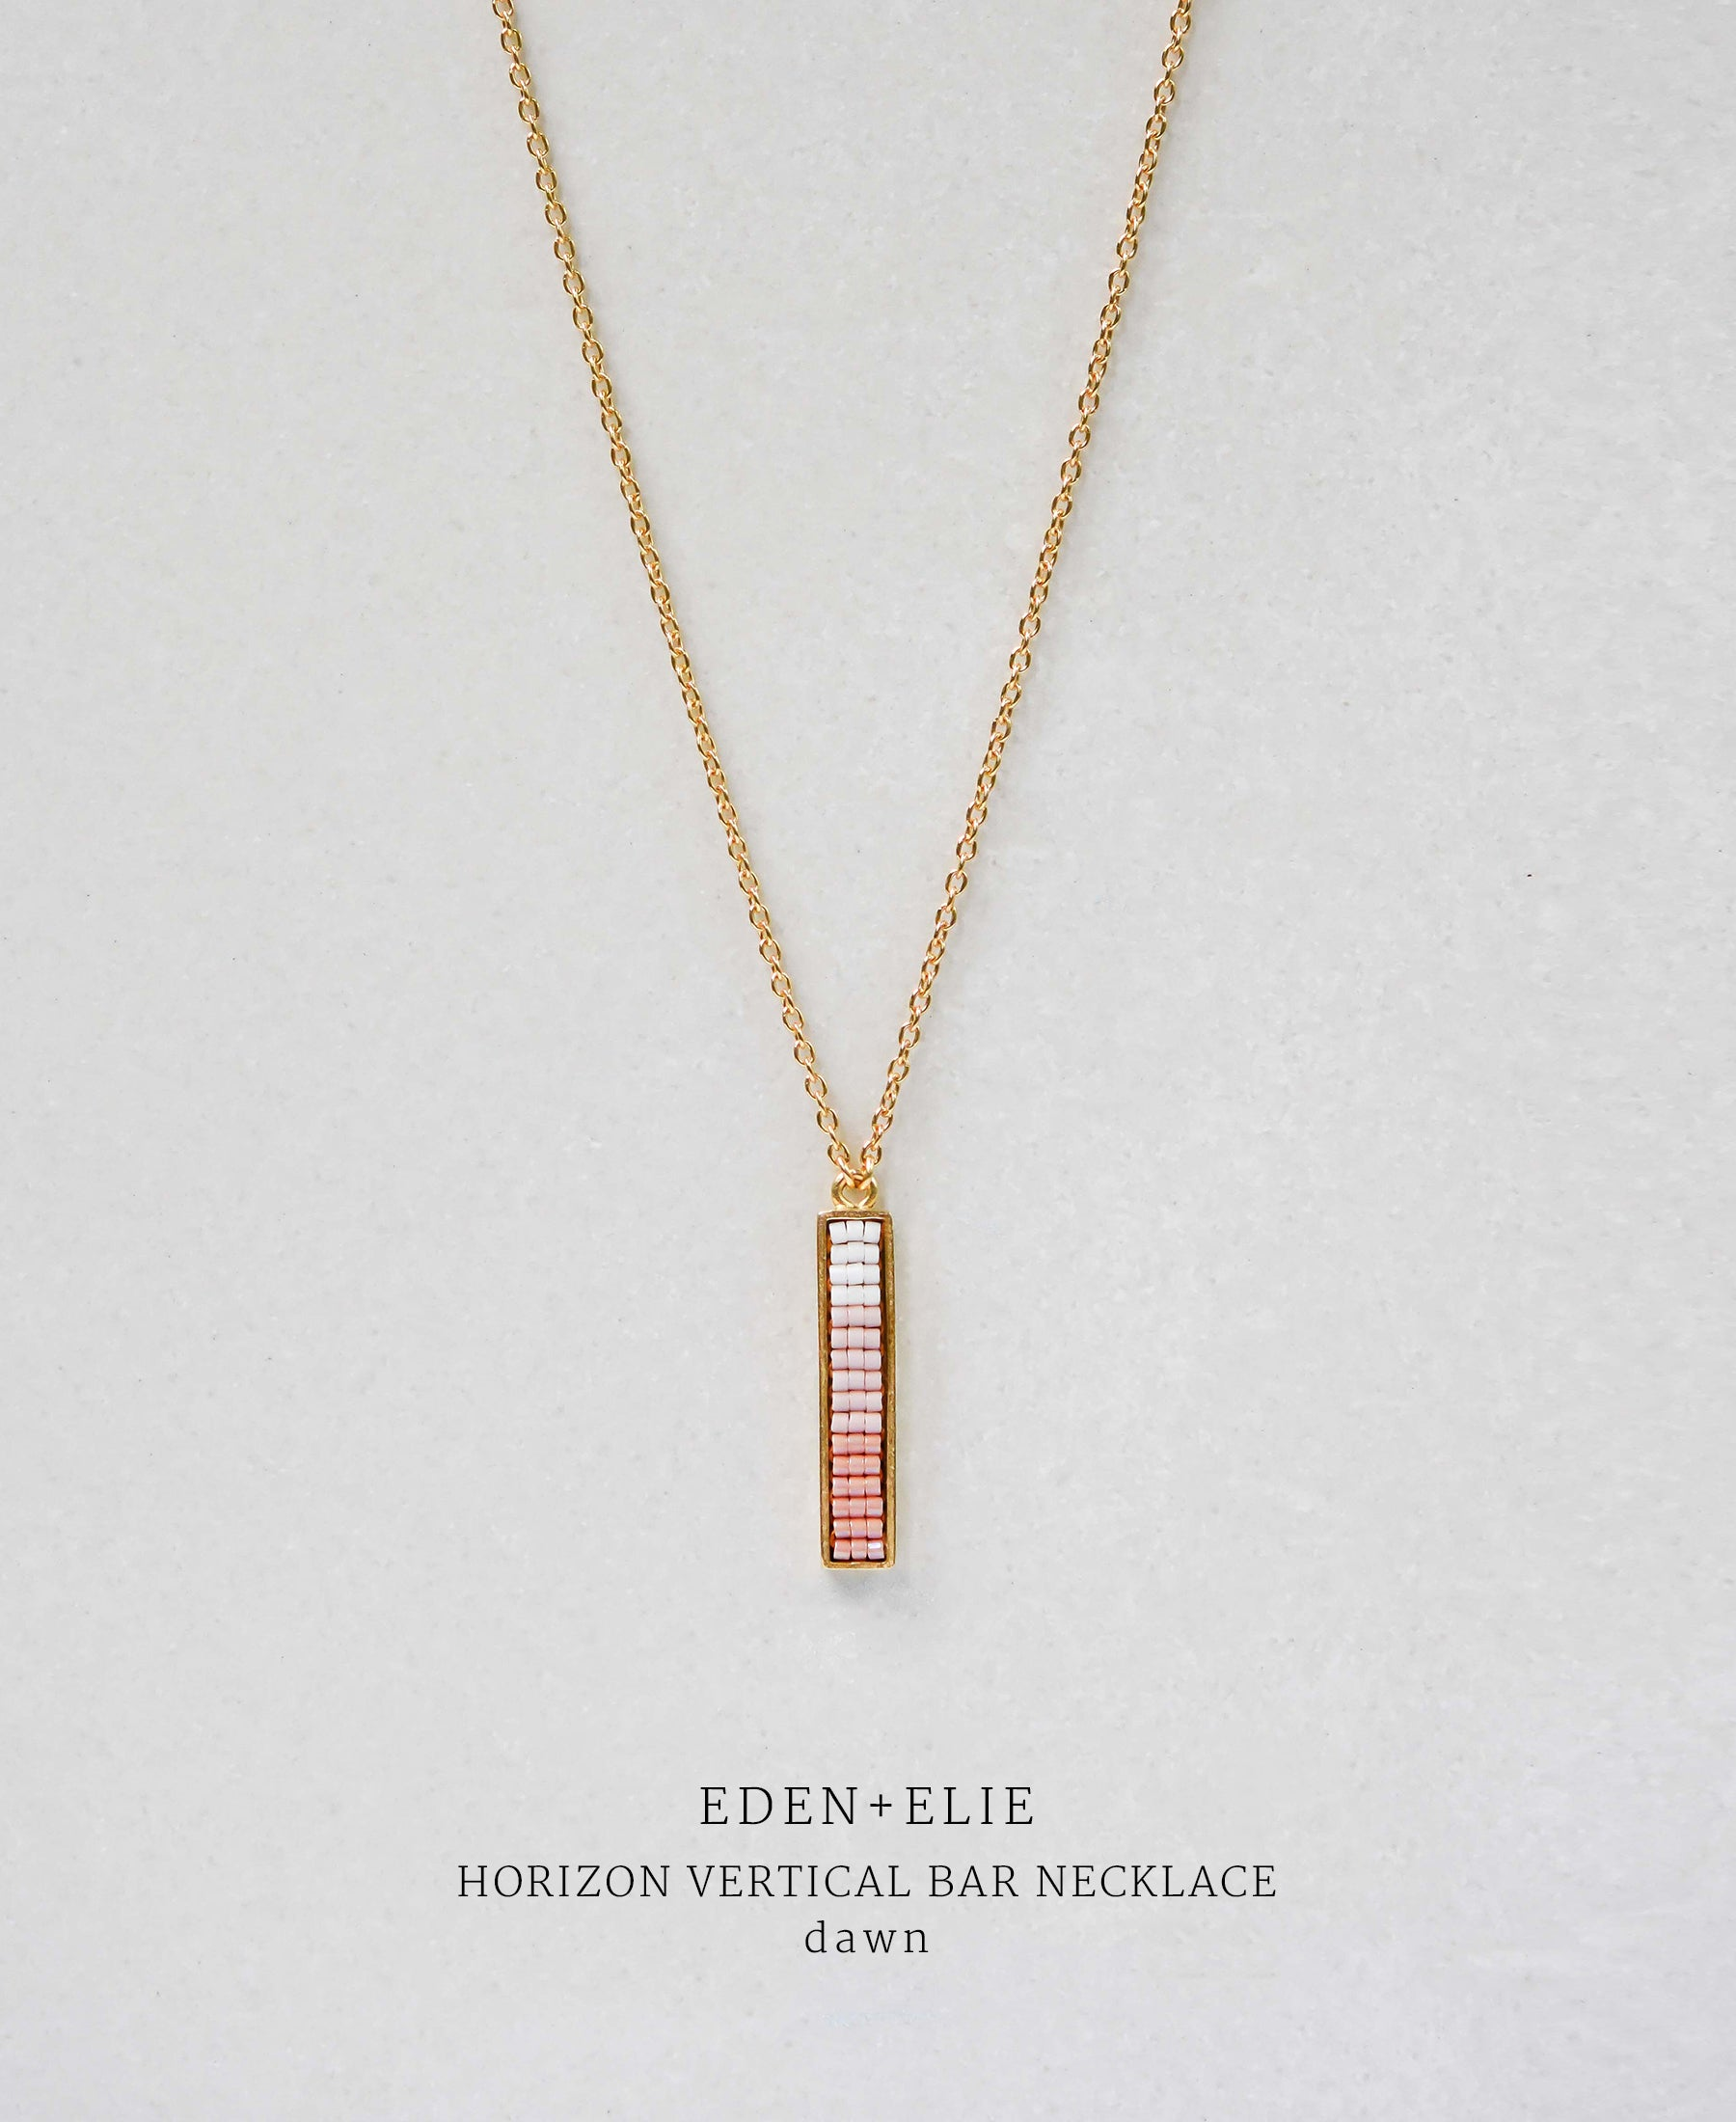 EDEN + ELIE Horizon Vertical bar necklace - dawn pink